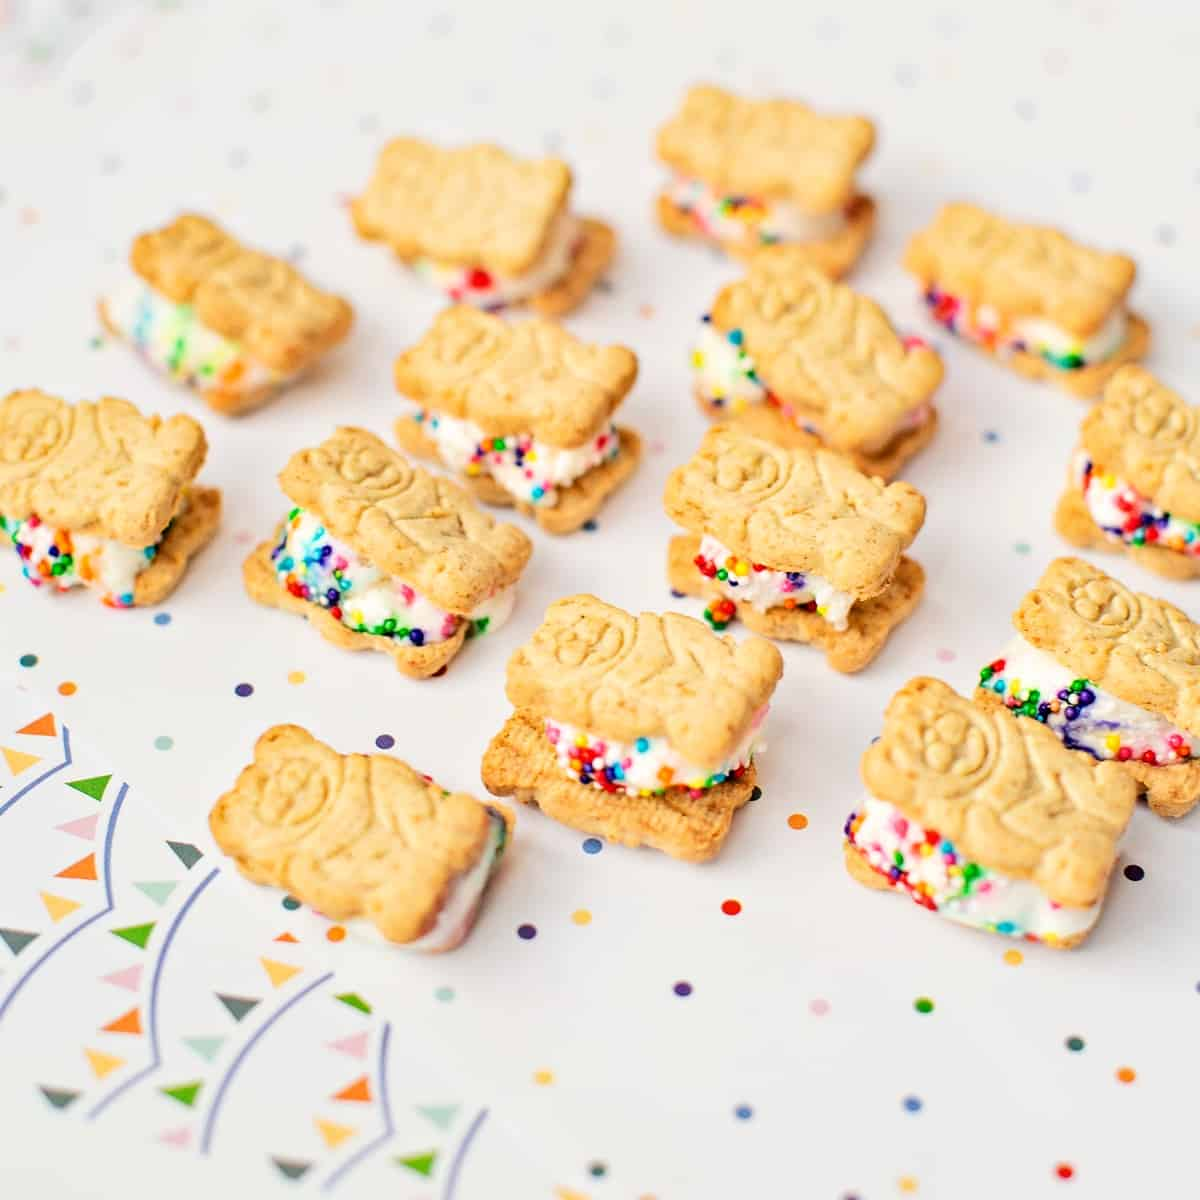 Teddy Bear Graham Ice Cream Sandwiches